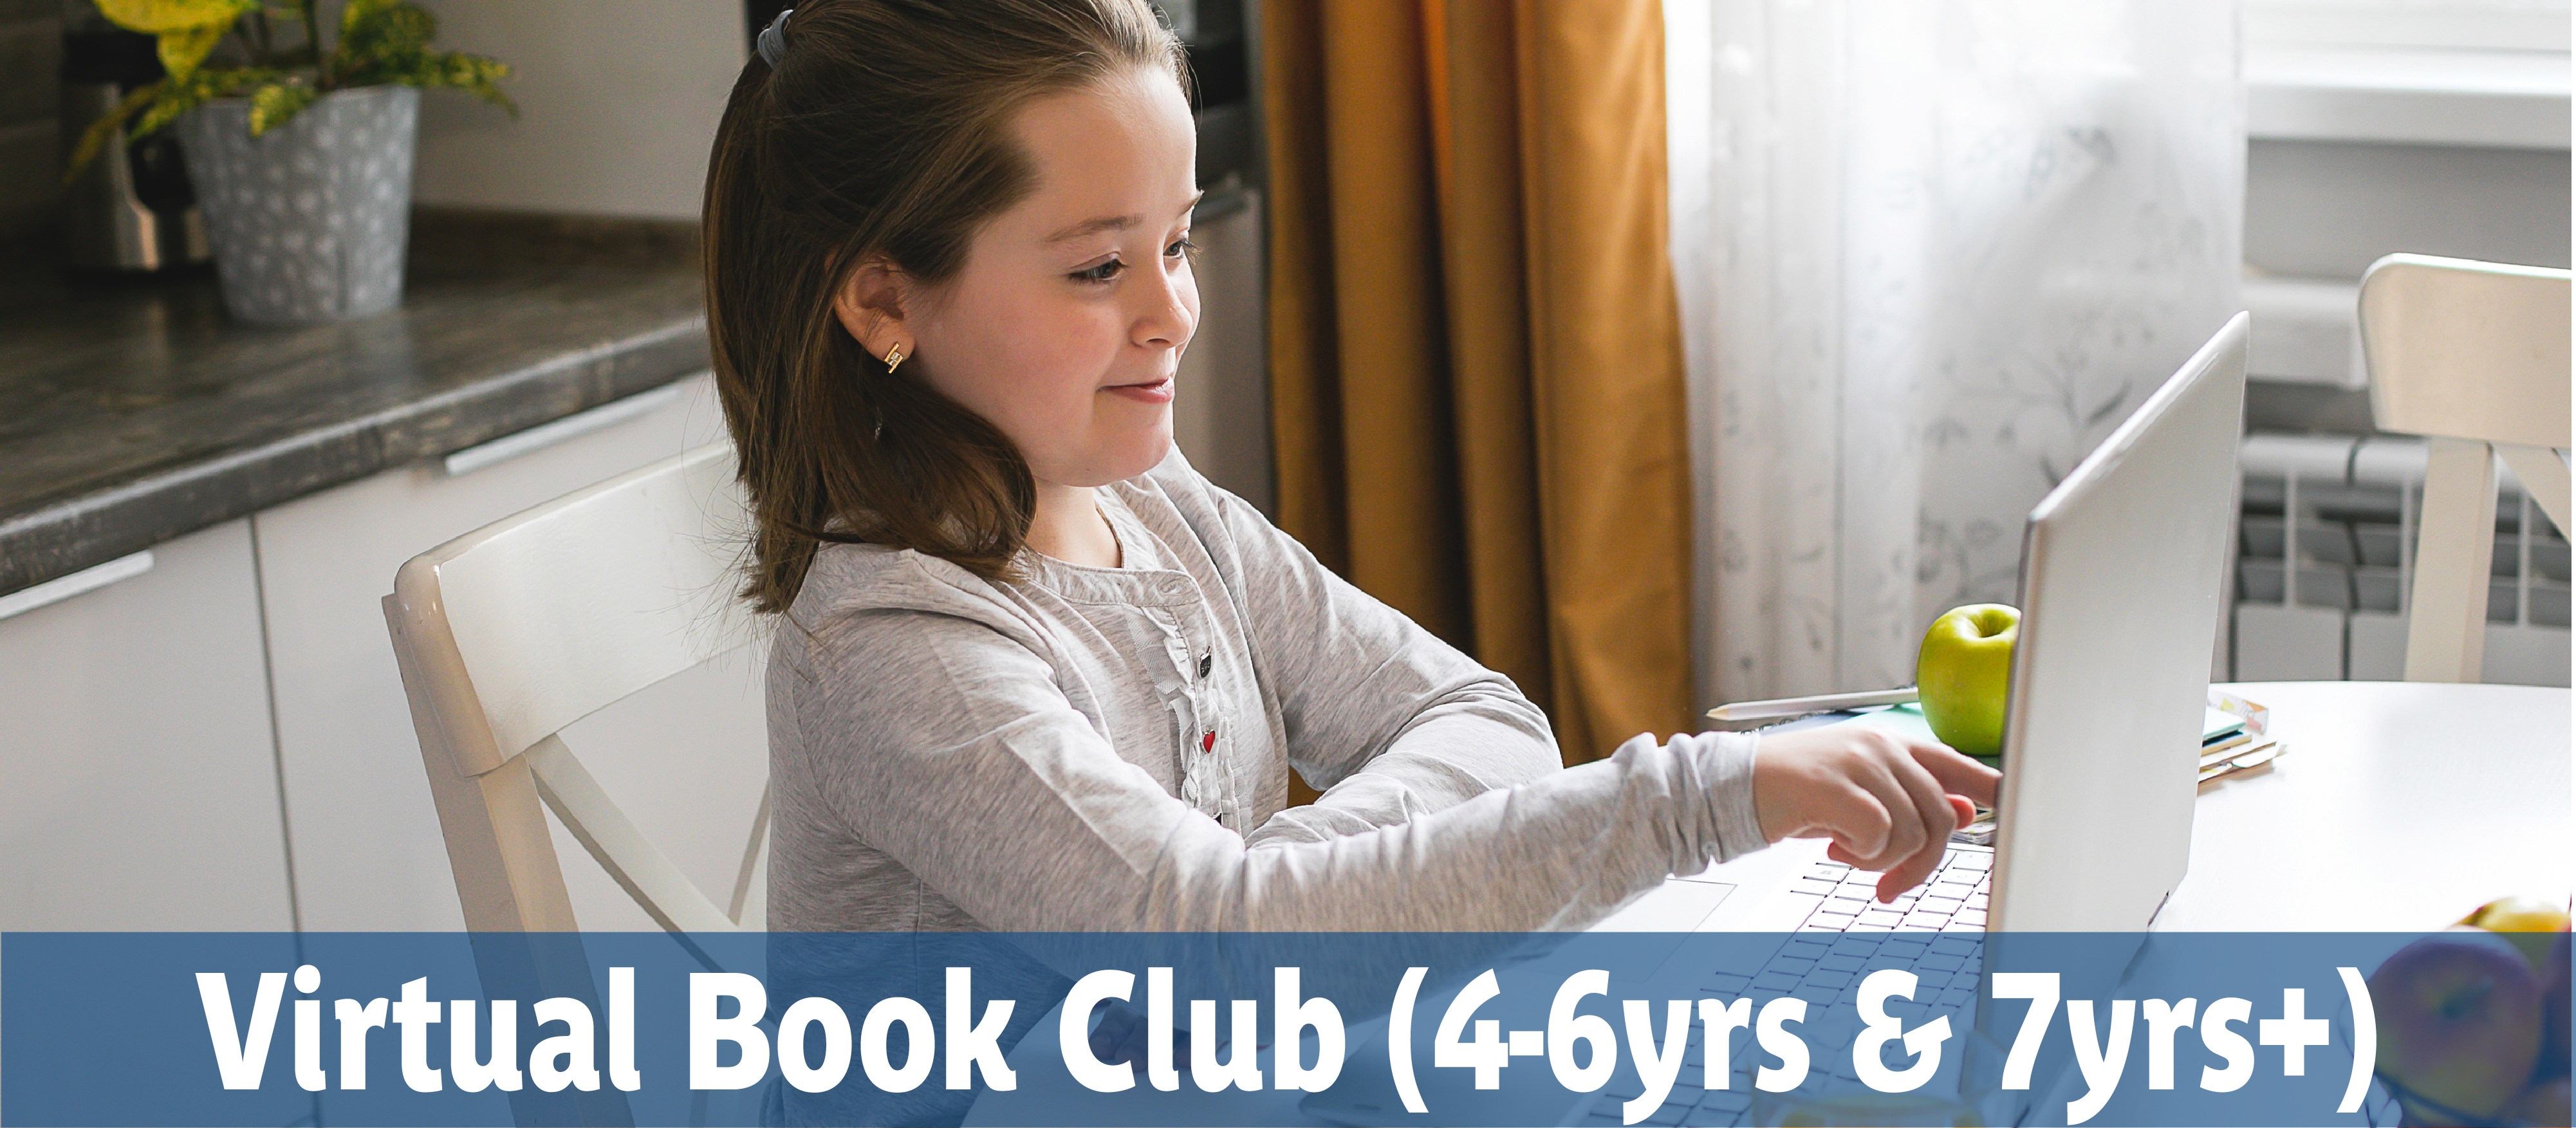 Virtual Book Club, Reading & Writing Program for children at home